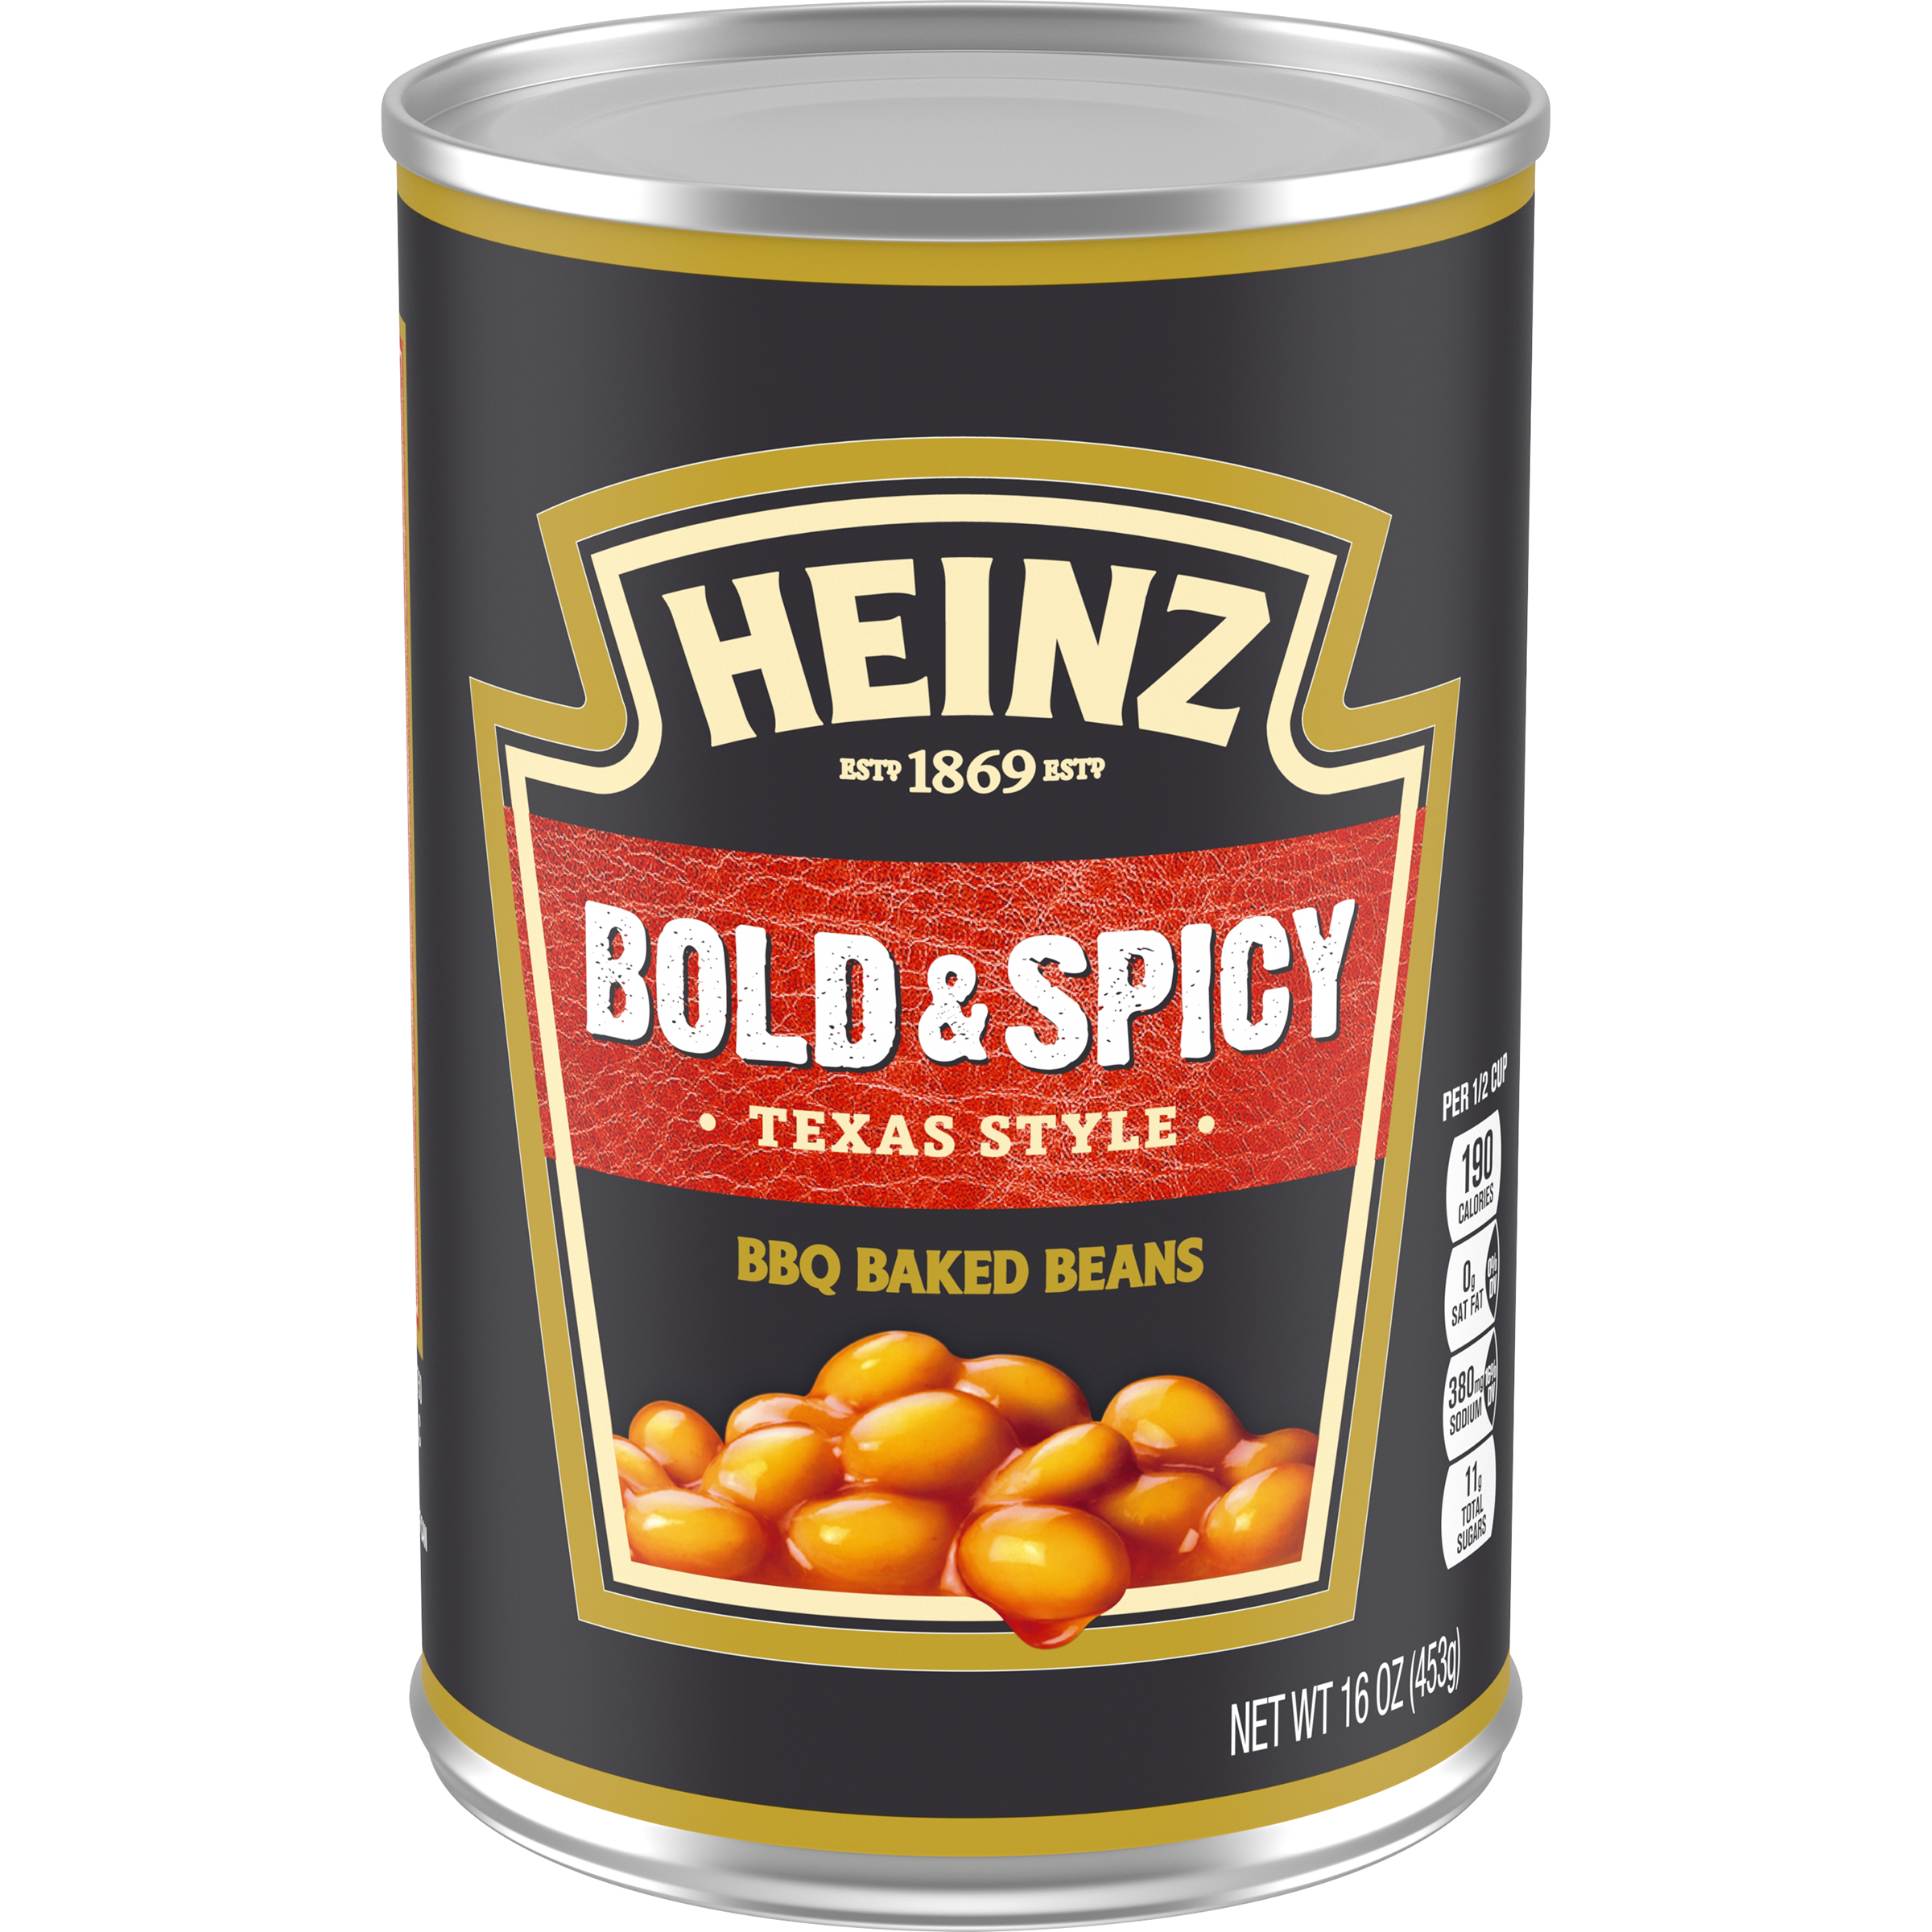 Heinz Sweet & Spicy Memphis-Style BBQ Baked Beans (16 oz. image